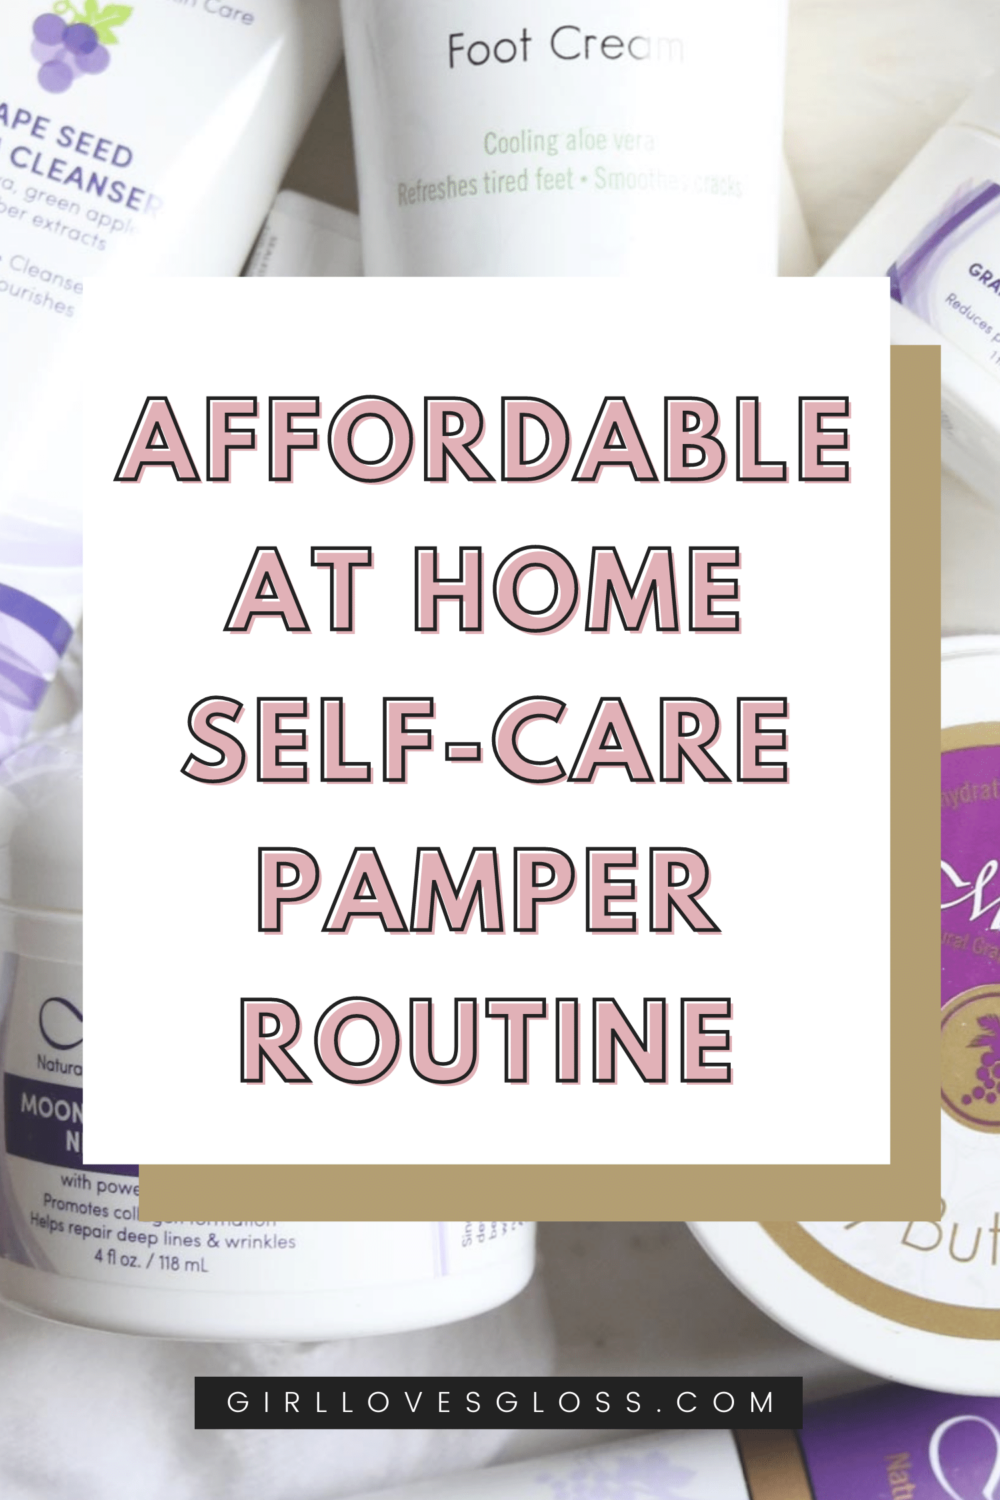 Affordable self-care at home pamper routine using budget friend skincare